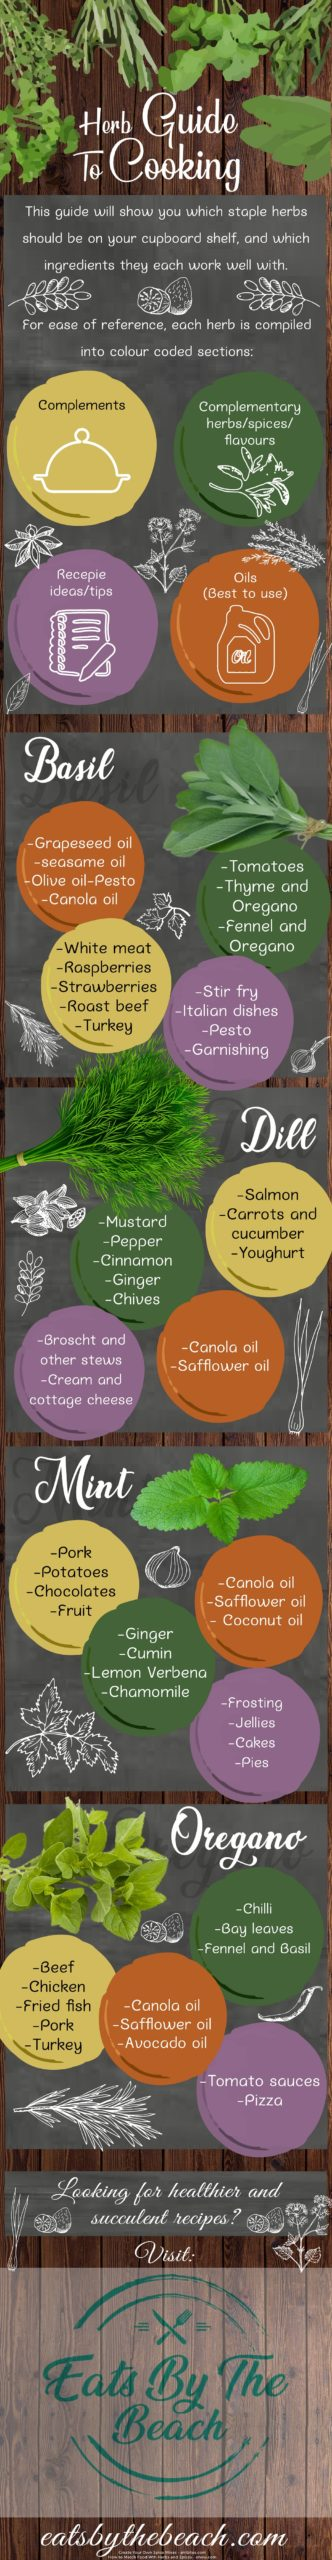 Herbs guide to cooking